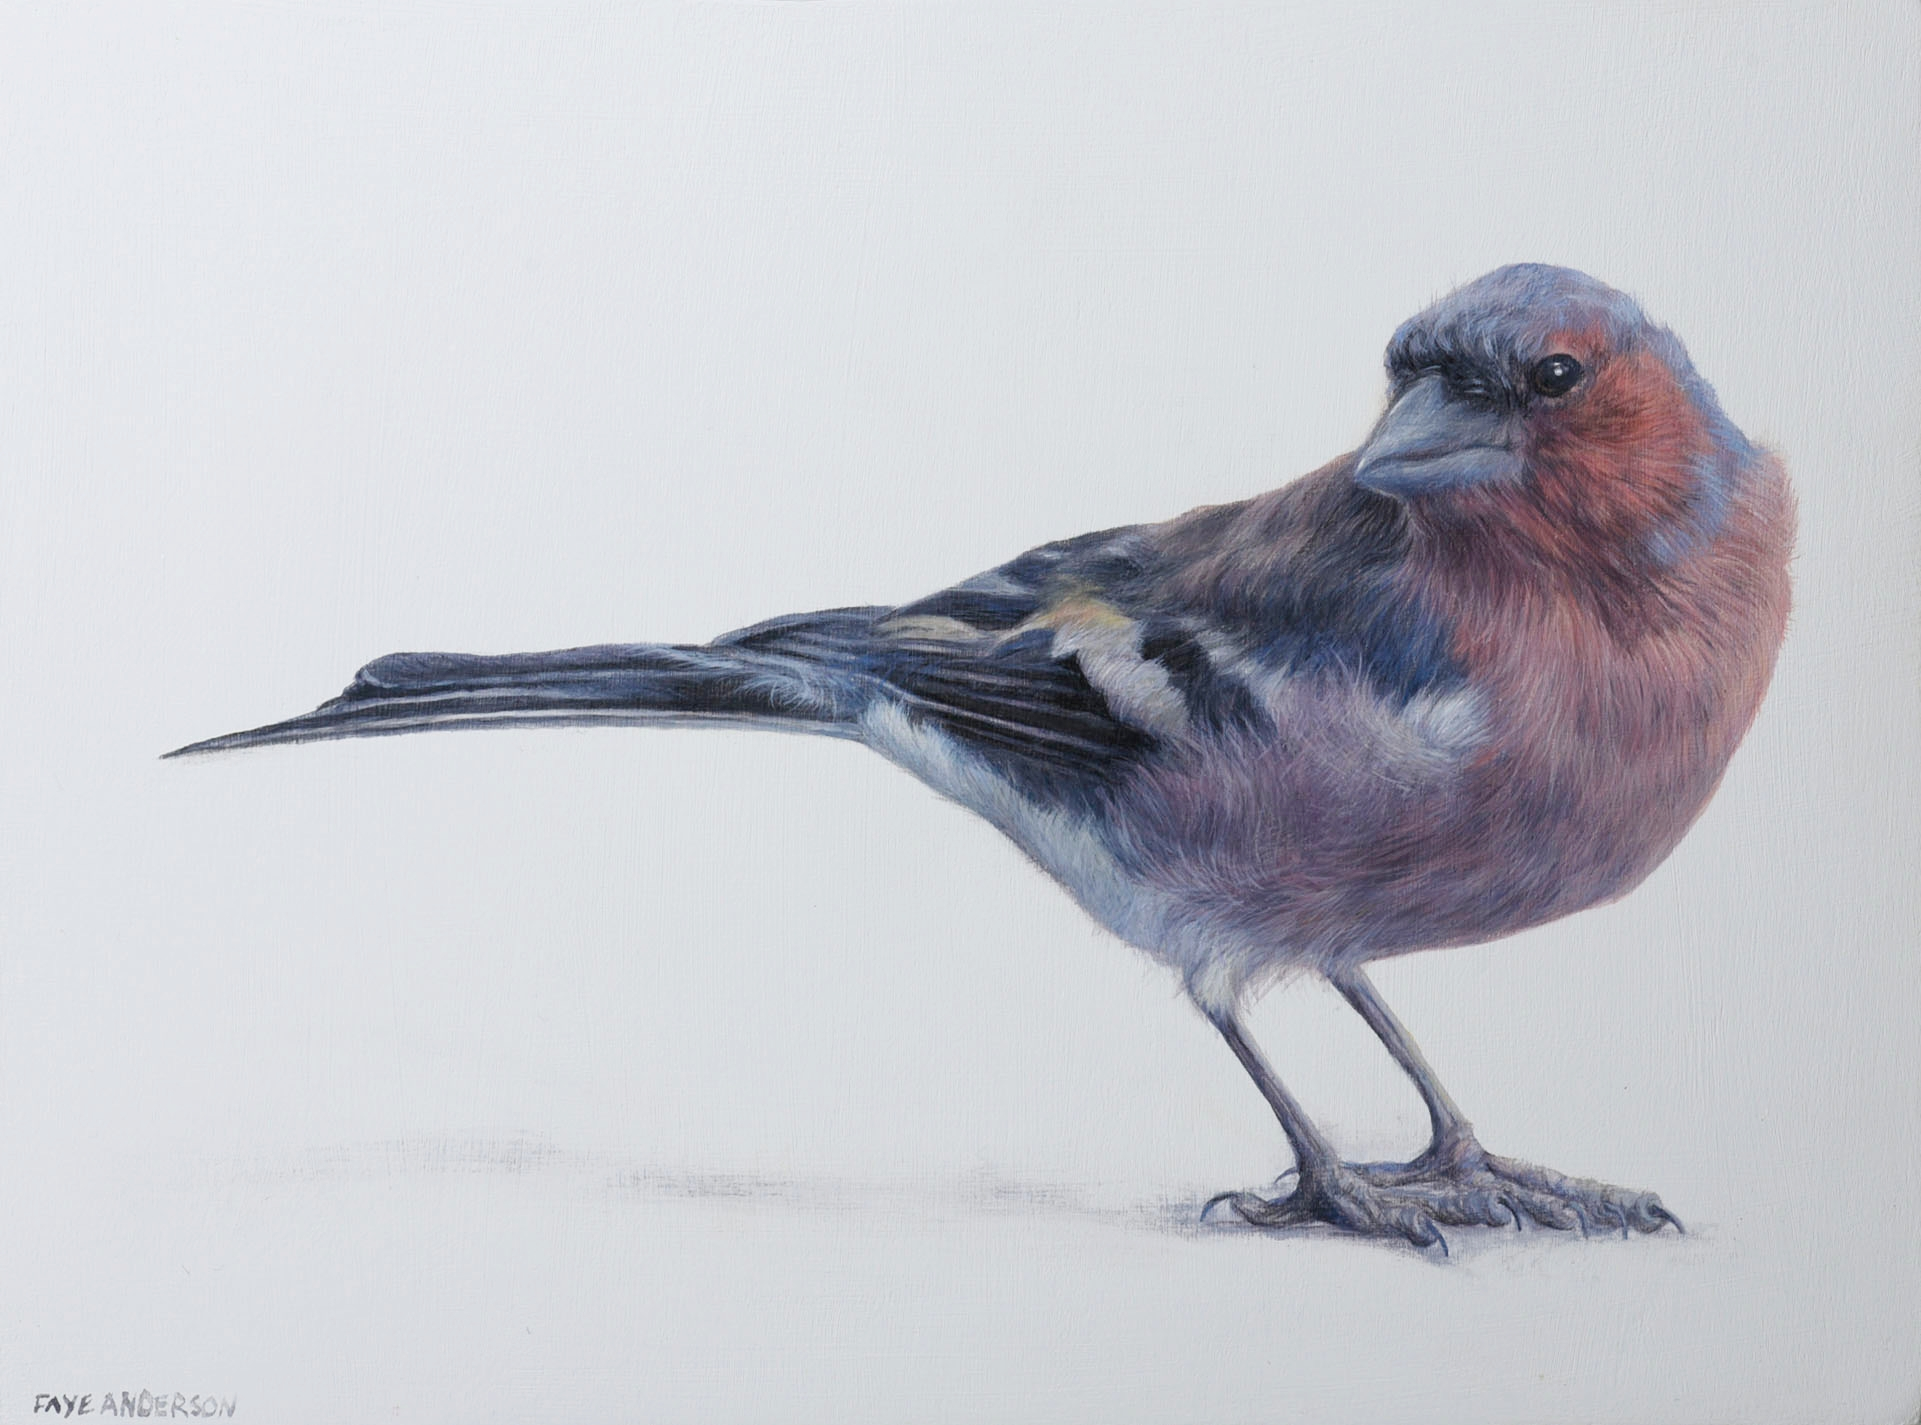 Artist: Faye Anderson  Title: Little Chaffinch  Size: 20 x 15 cm  Medium: Egg Tempera   SOLD